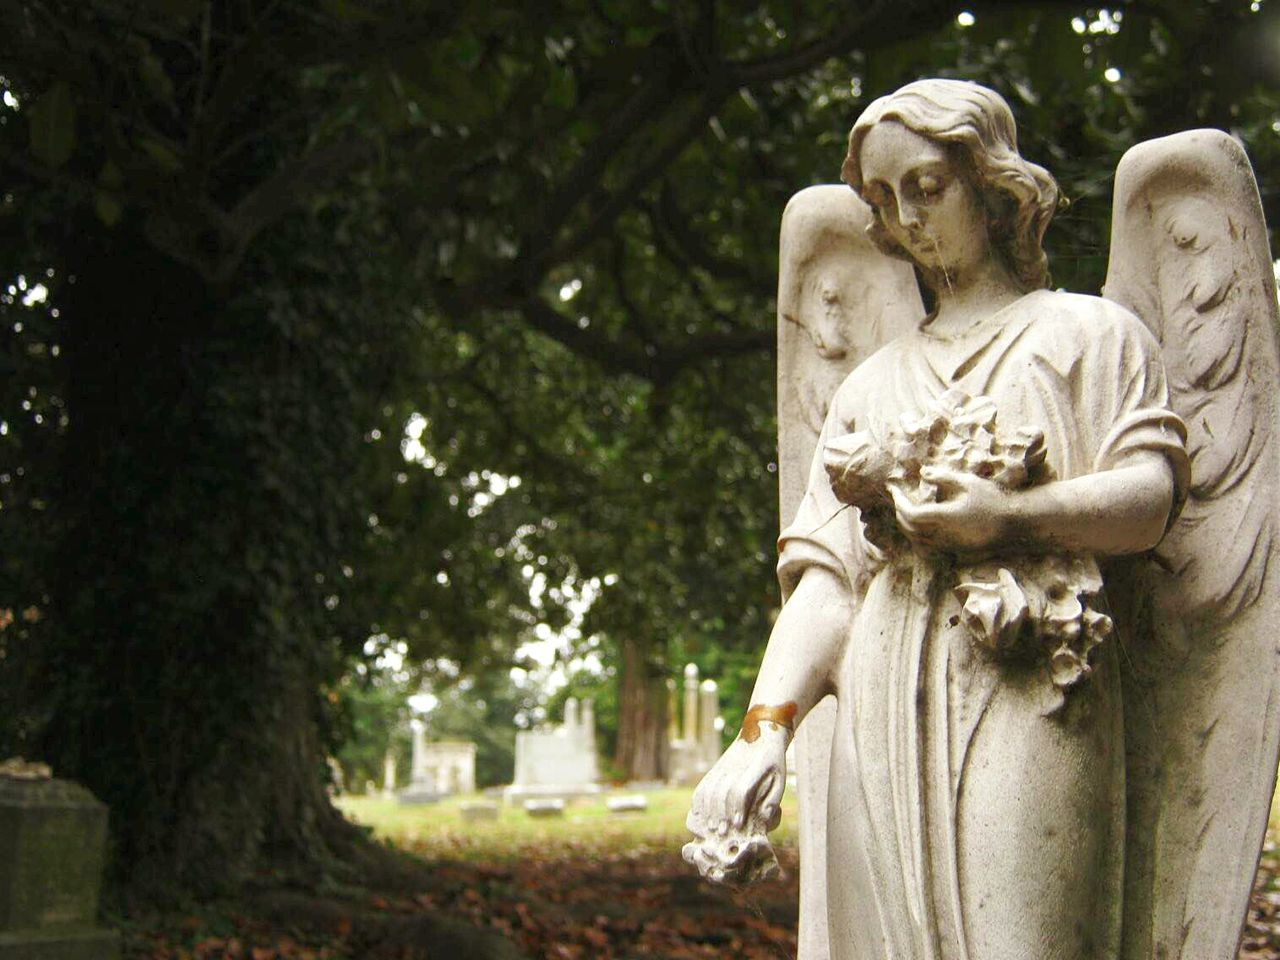 Low Angle View Of Statue In Cemetery